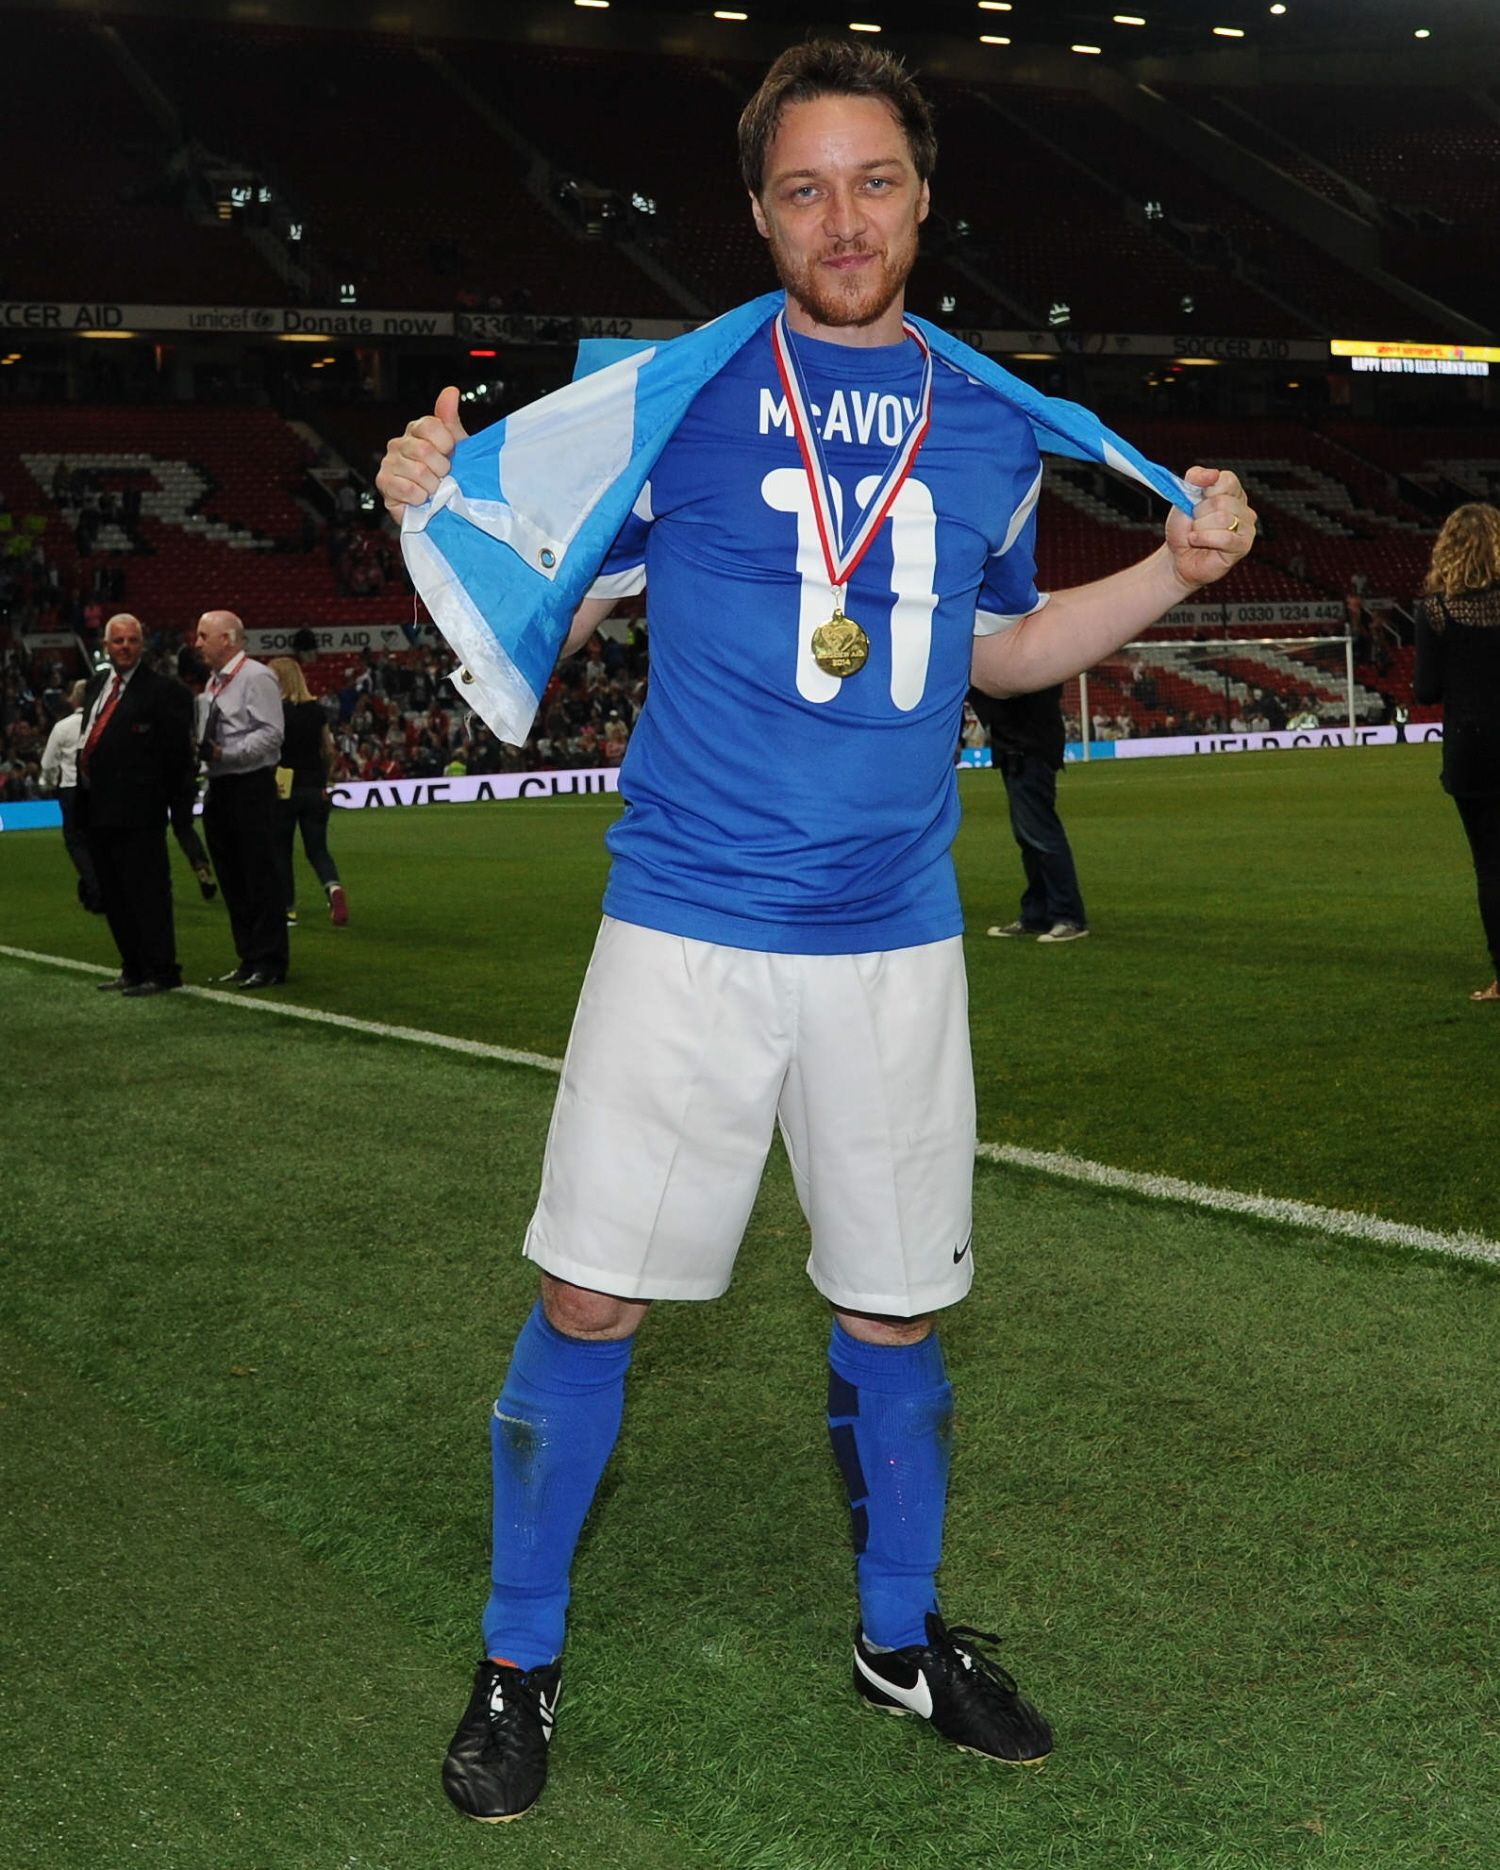 Pin By Just Another Fangirl On James Mcavoy In 2020 James Mcavoy Soccer Aid Liam Hemsworth